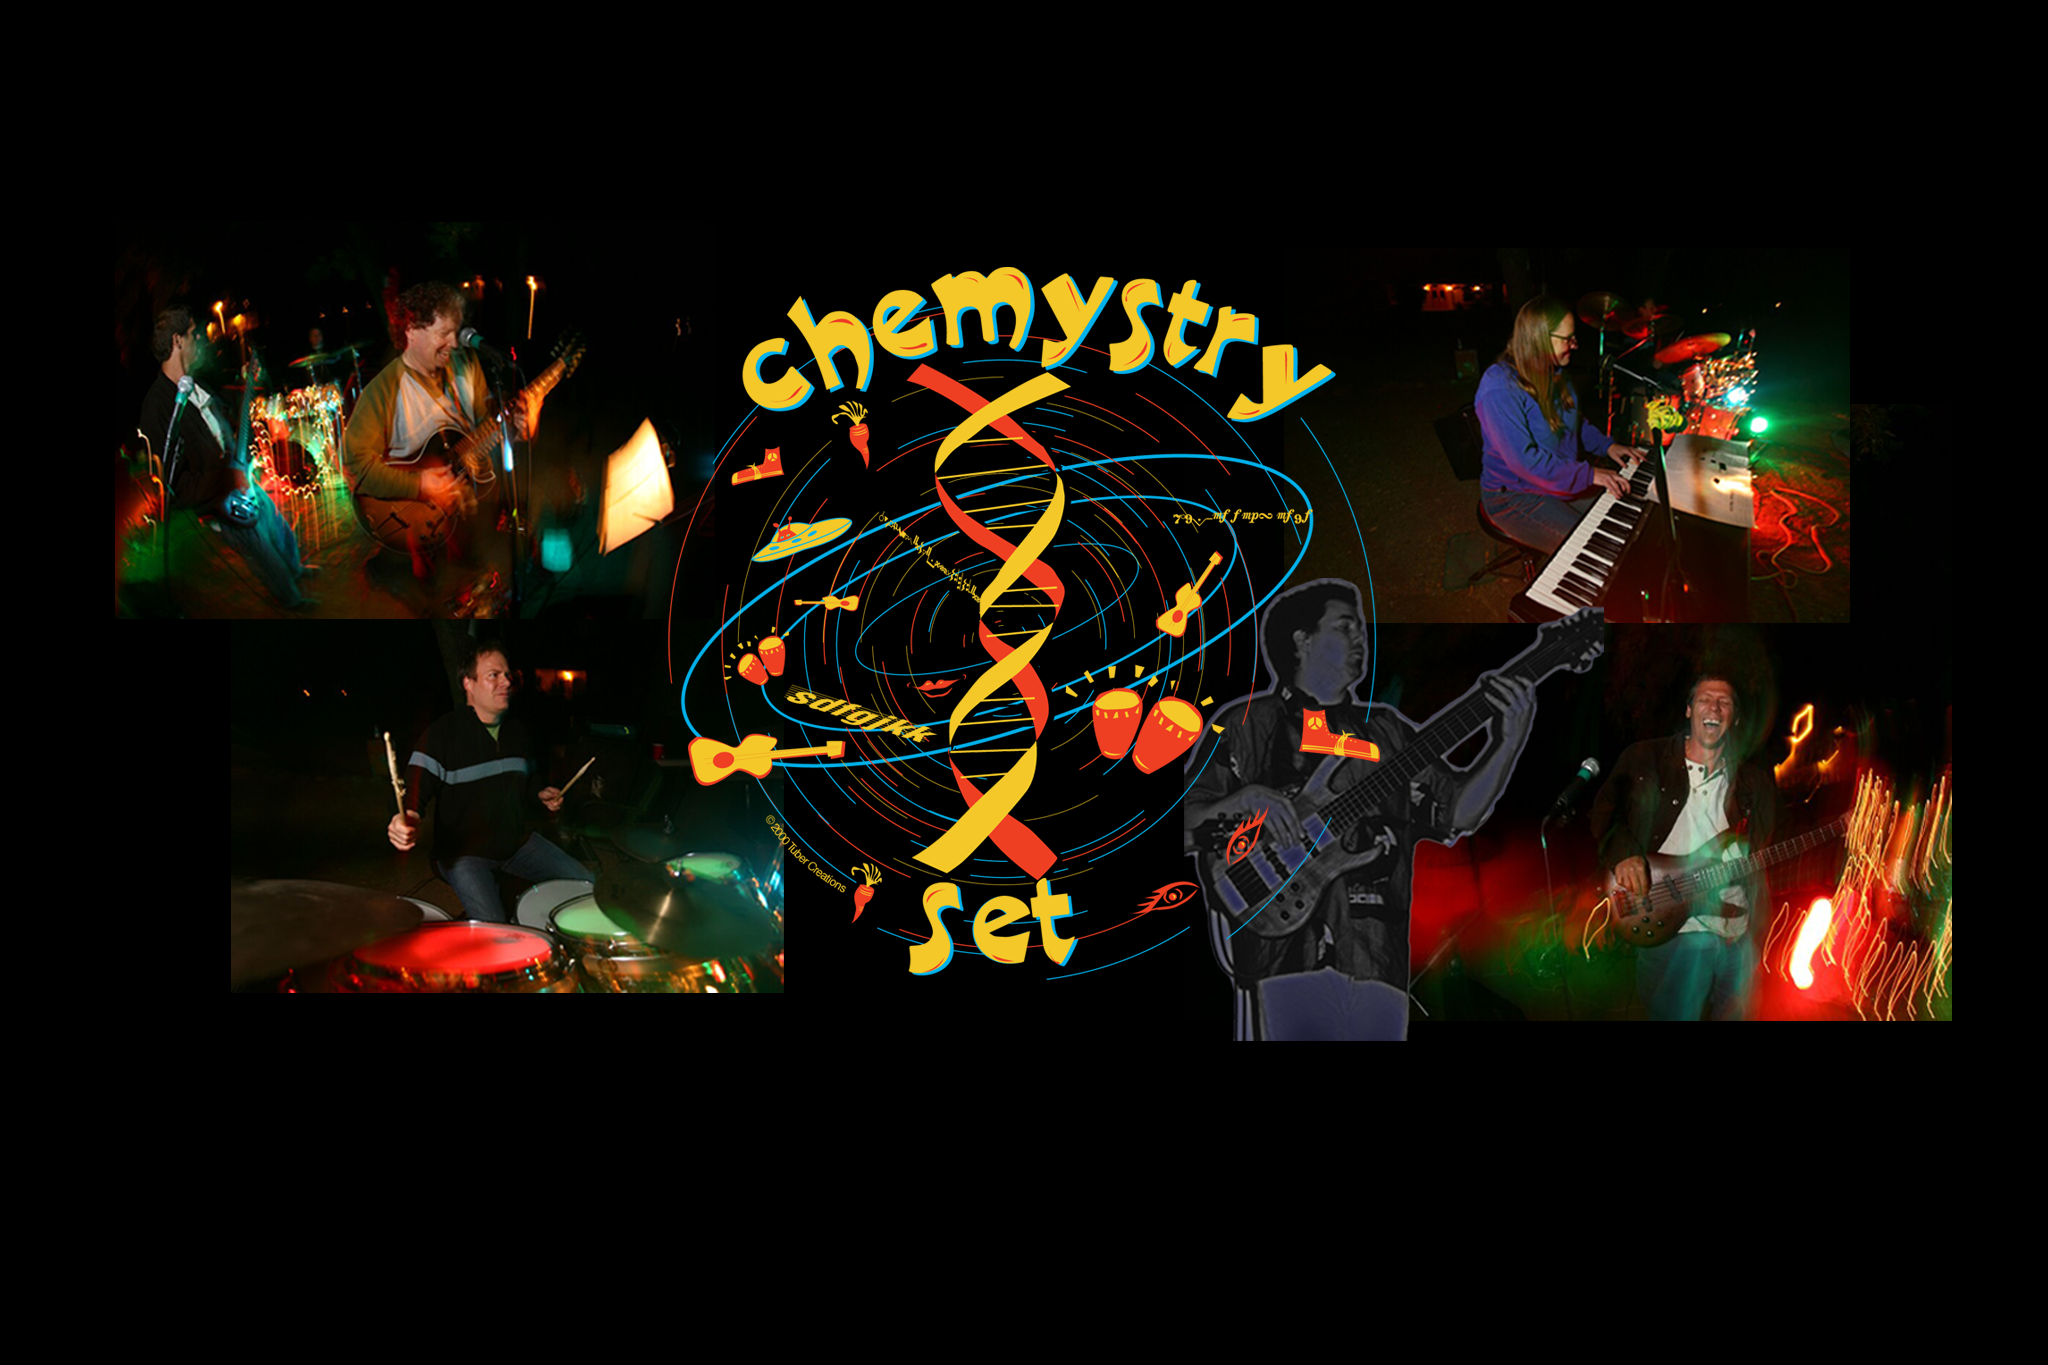 New Chemystry Set site is up!